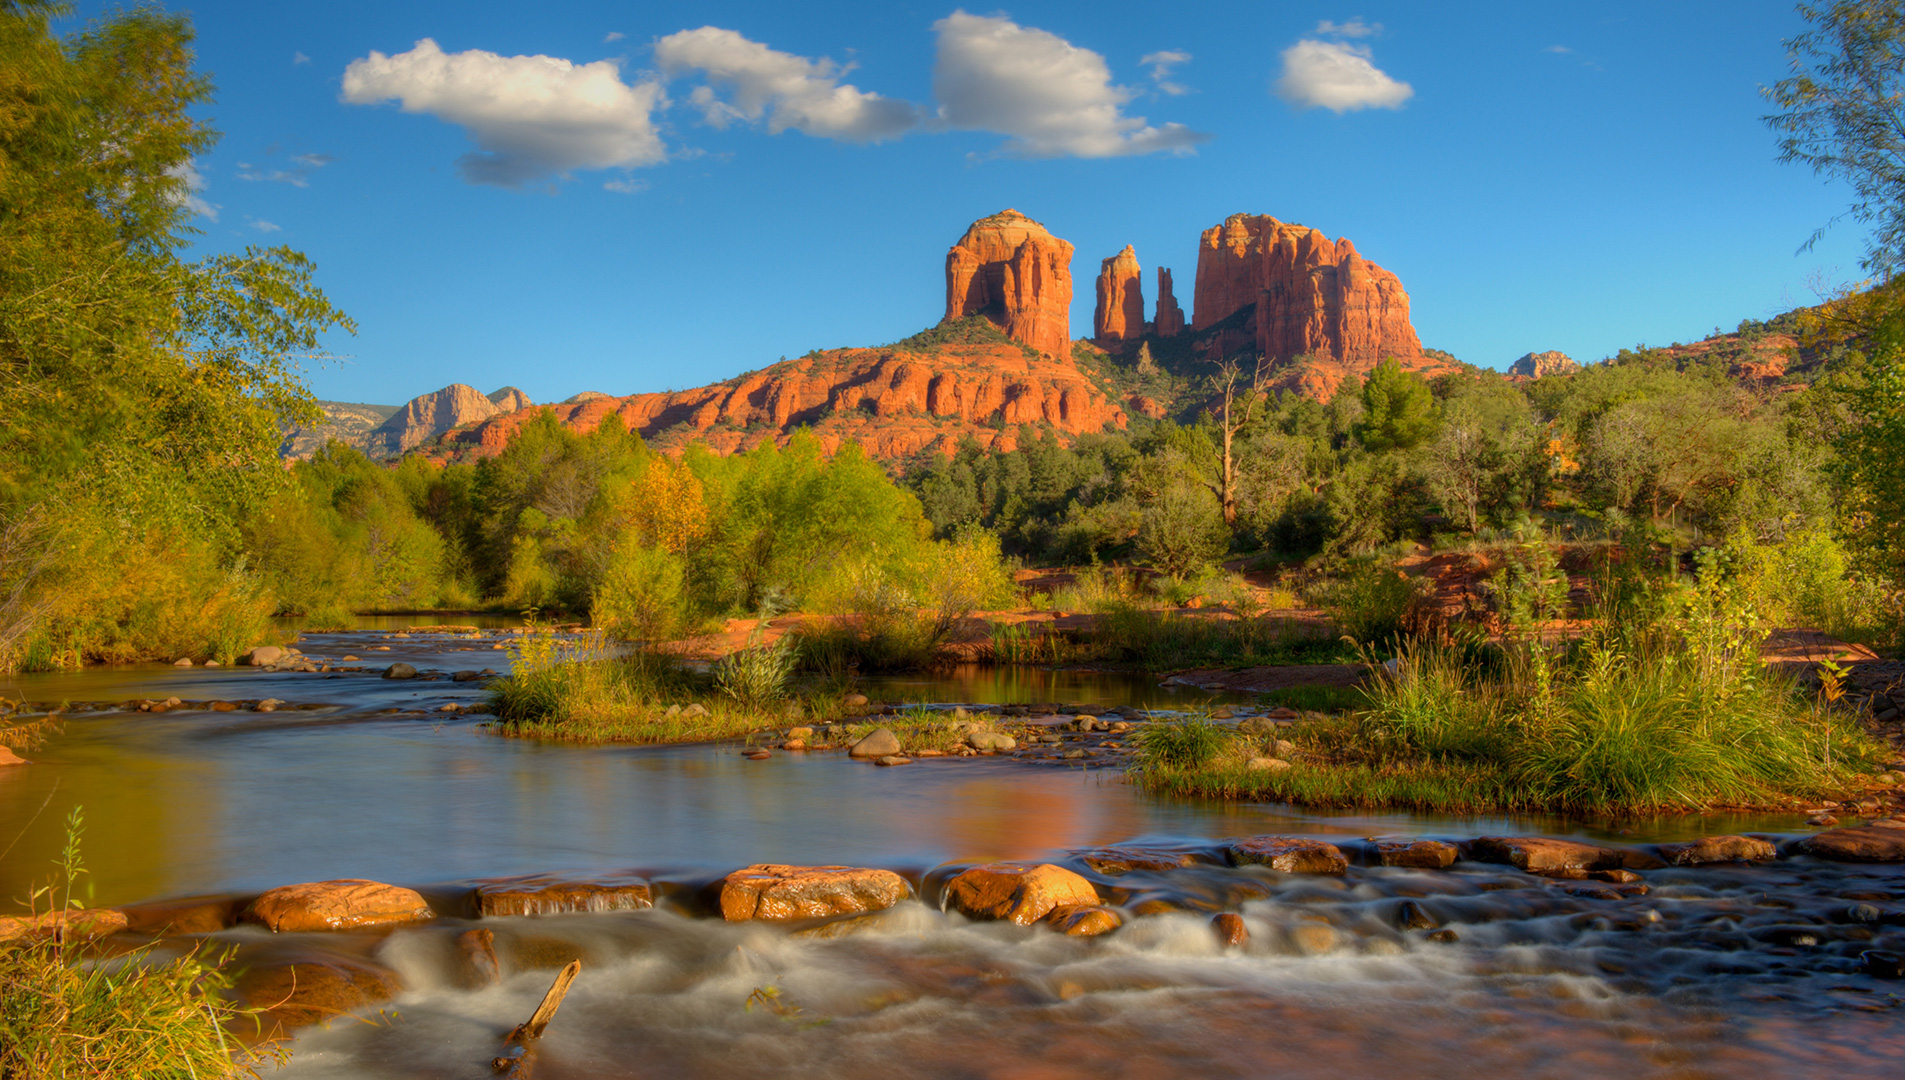 Soaring red rock bluffs rise from the placid water of Oak Creek in Sedona's Red Rock country.